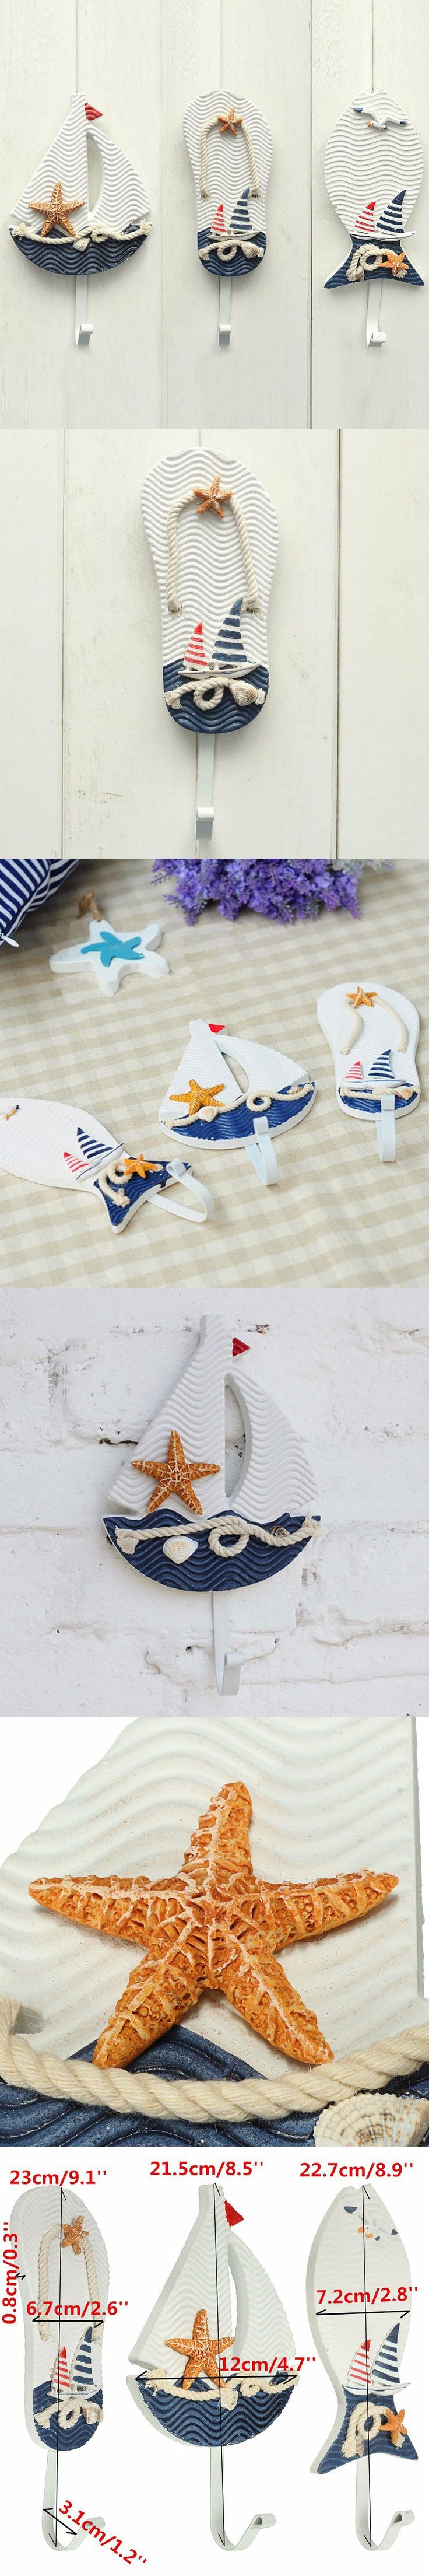 New Wall Hooks Mediterranean Style Anchors Fish Slipper Boat Shaped Living Room Hanging Decoration Nautical Decor $8.49